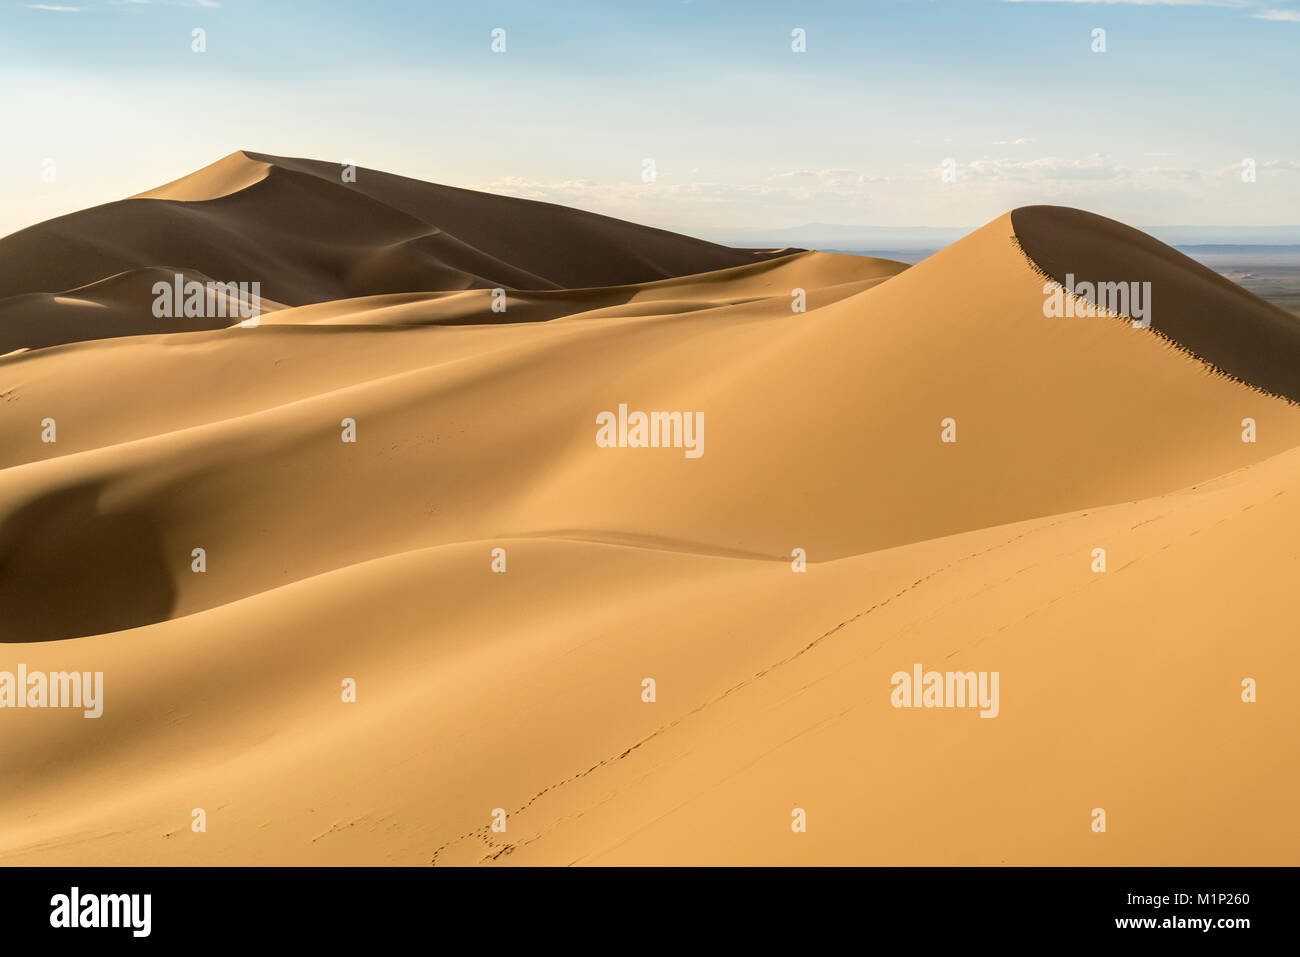 Dunes de sable Khongor Gobi Gurvan Saikhan en parc national, Sevrei district, province sud de Gobi, la Mongolie, Photo Stock